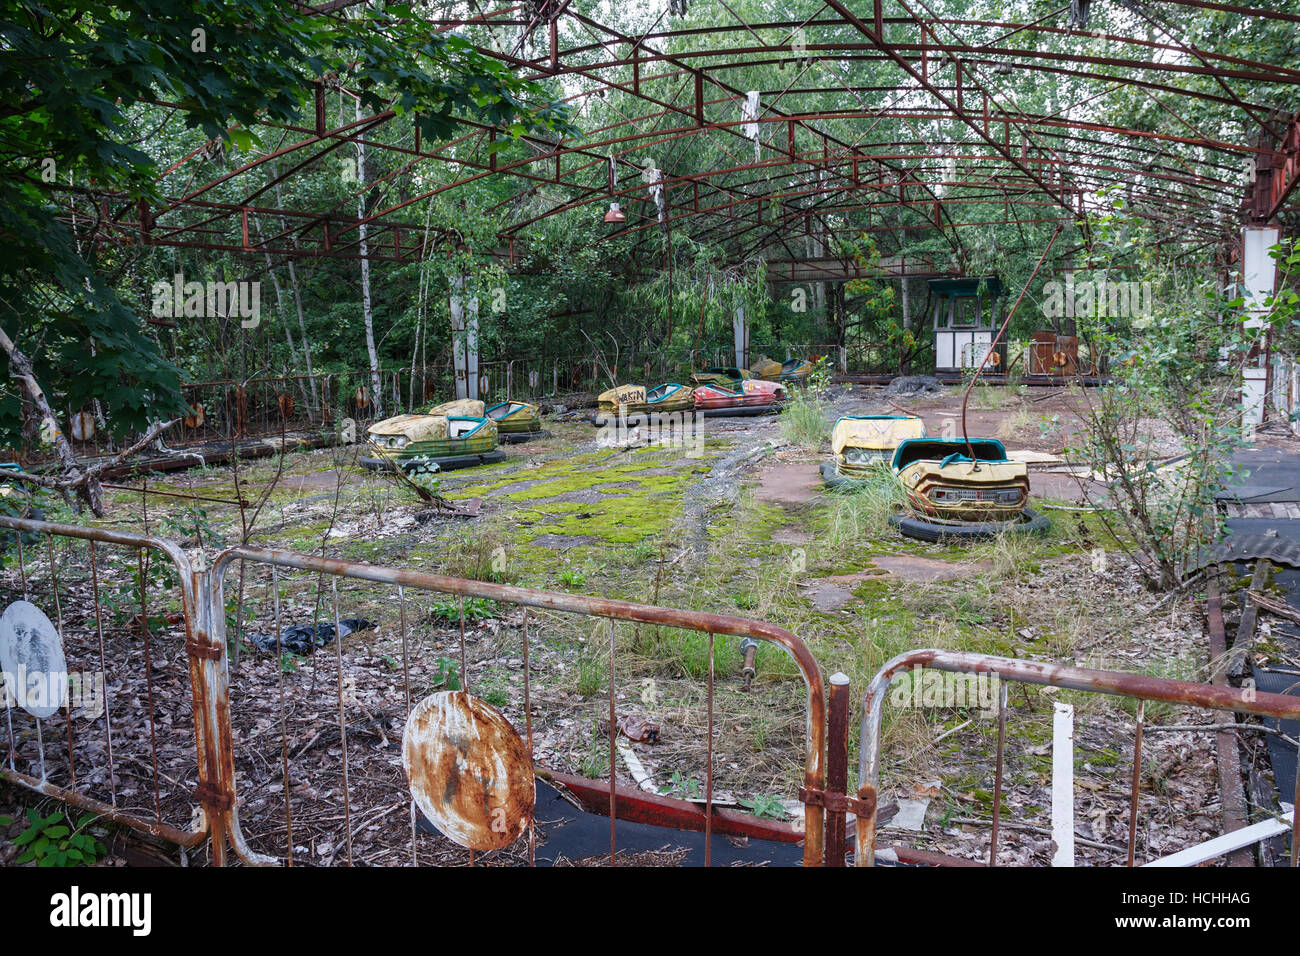 The bumber cars of the Prypiat amusement park. The park has become a symbol of the 1986 Chernobyl nuclear disaster. - Stock Image